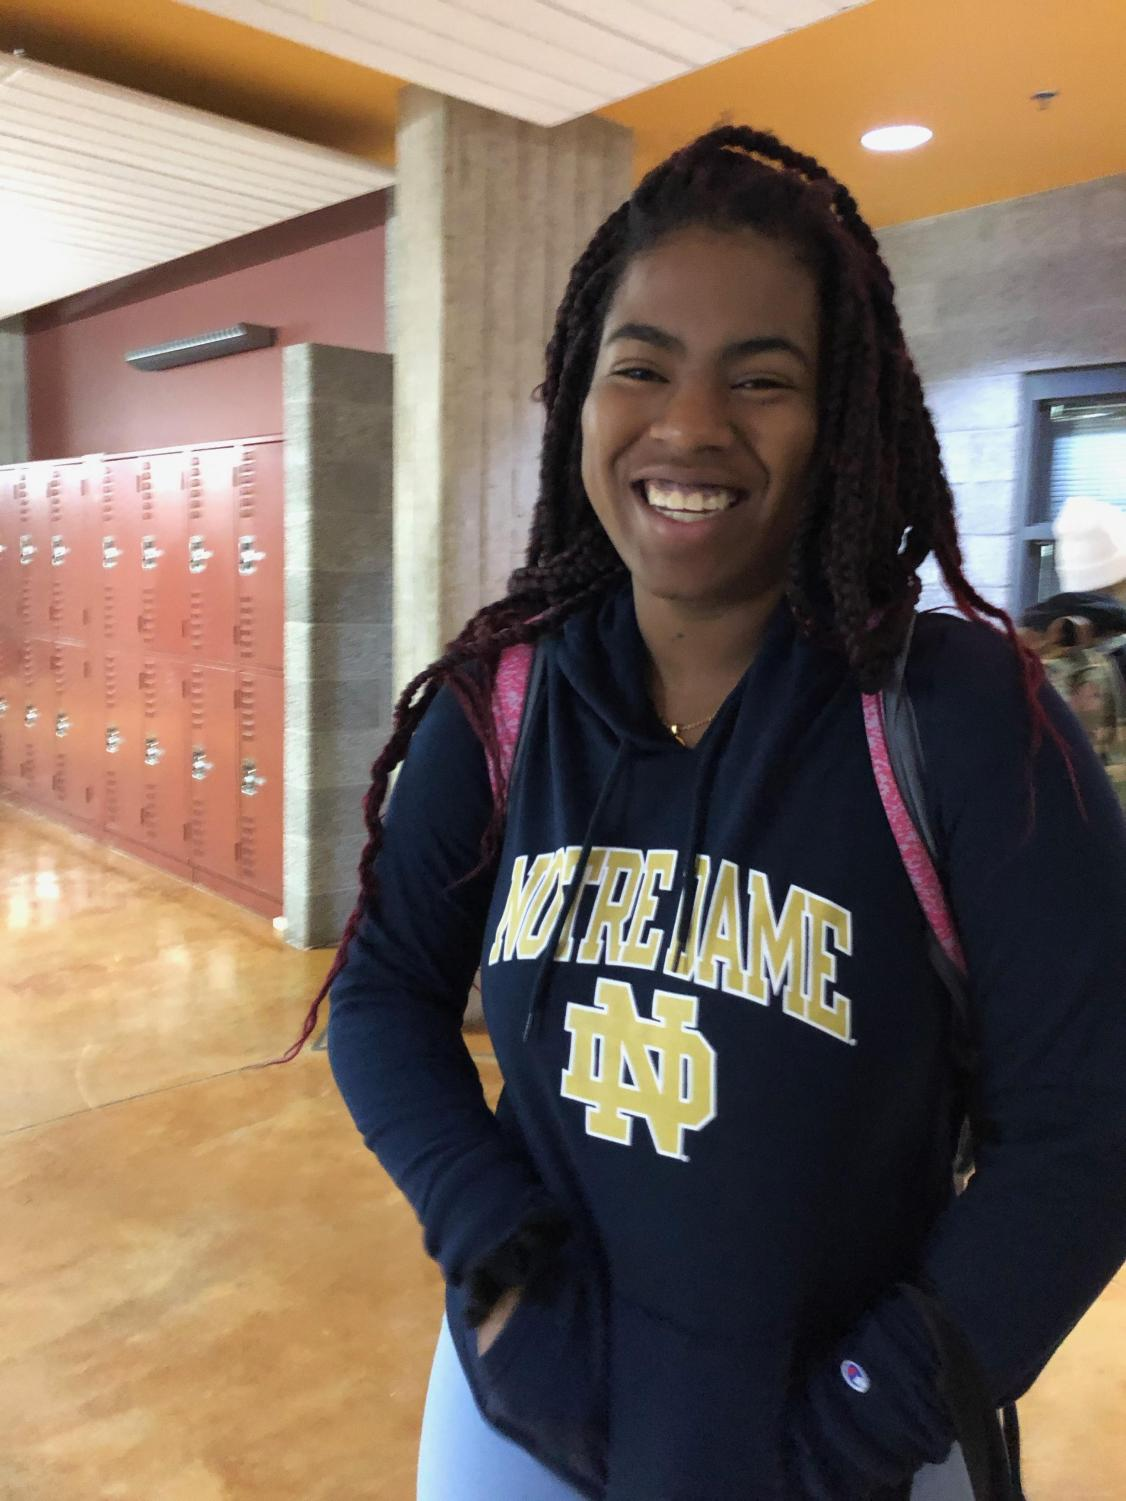 Climary Sanchez wears her Notre Dame sweatshirt after being matched to the University through the QuestBridge scholarship.